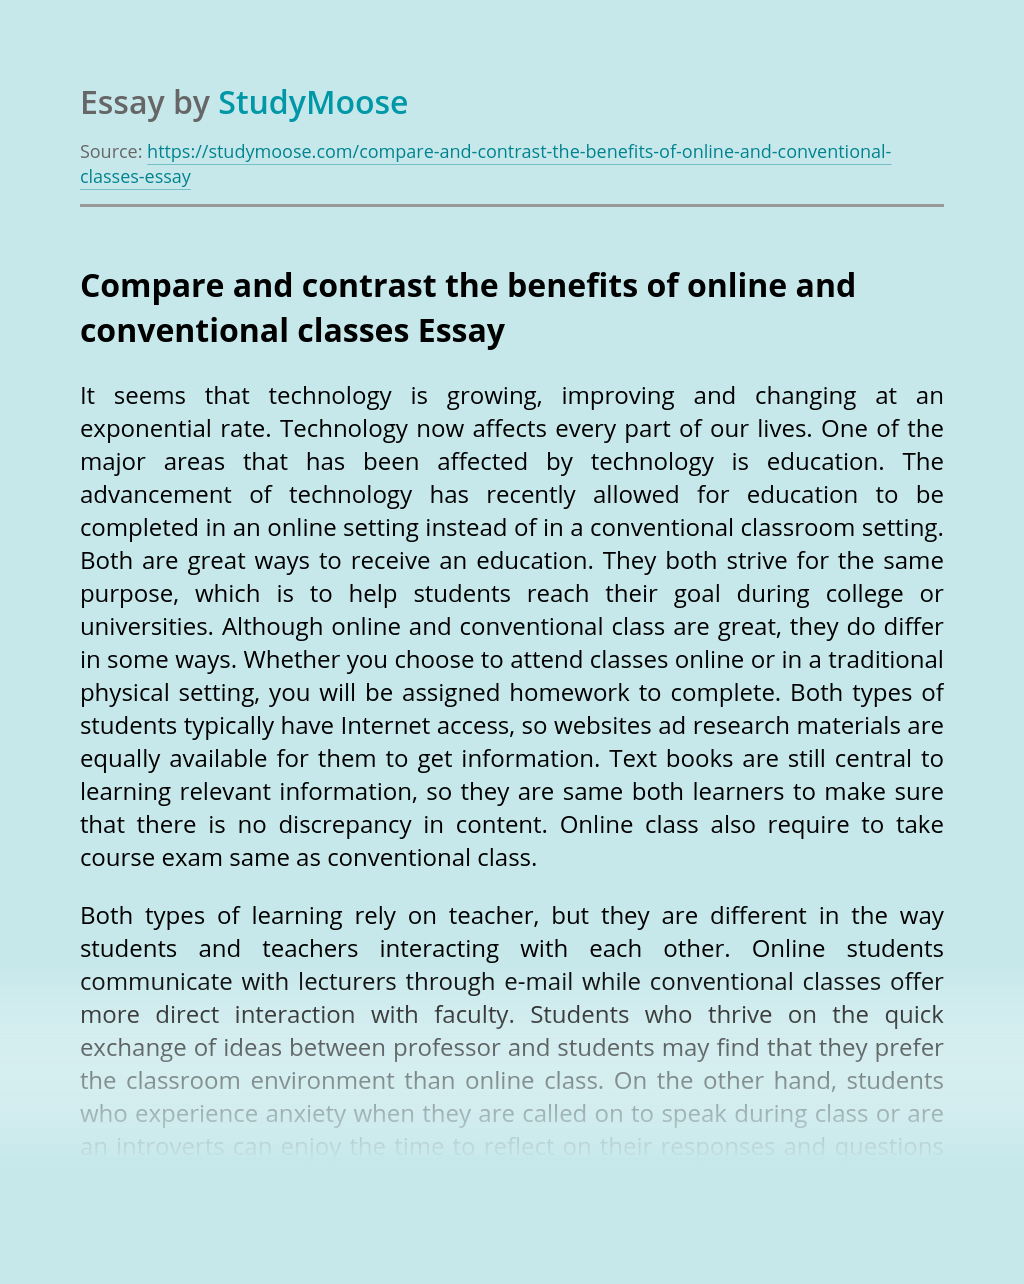 Compare and contrast the benefits of online and conventional classes